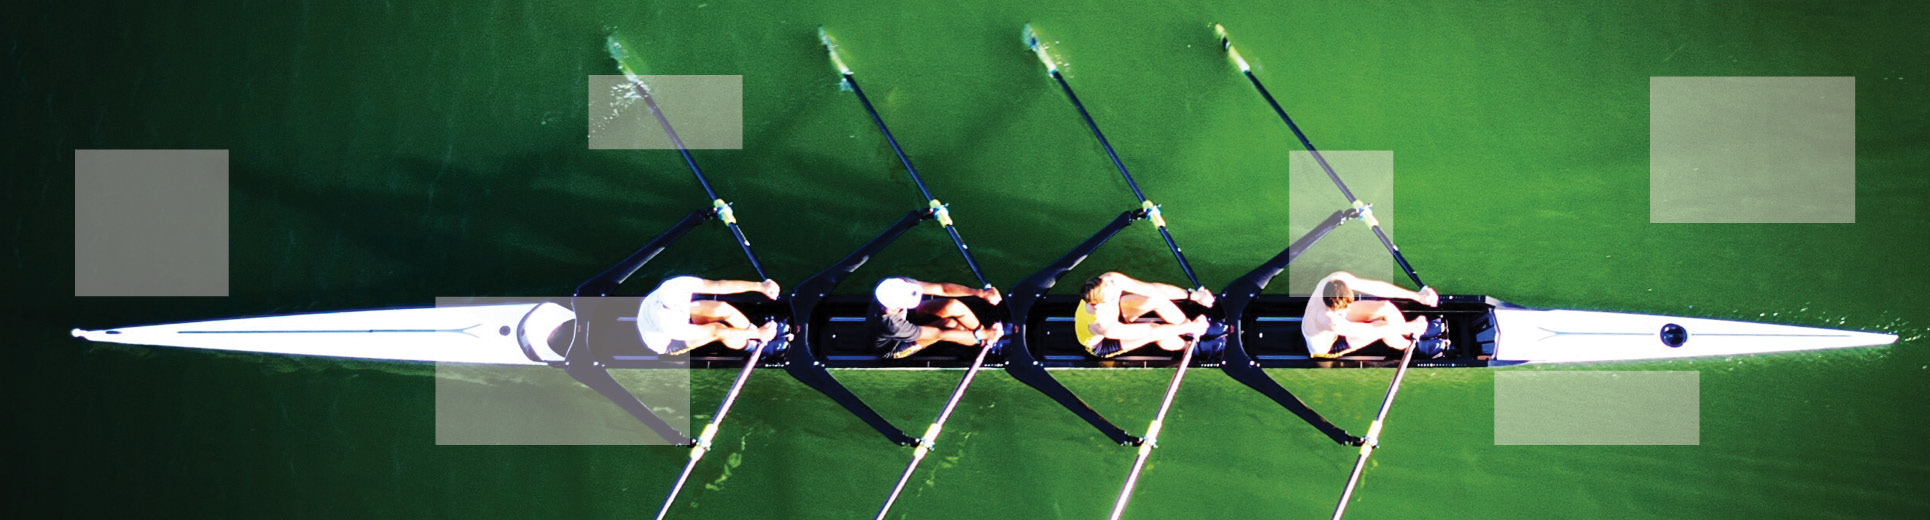 4 individuals rowing in water